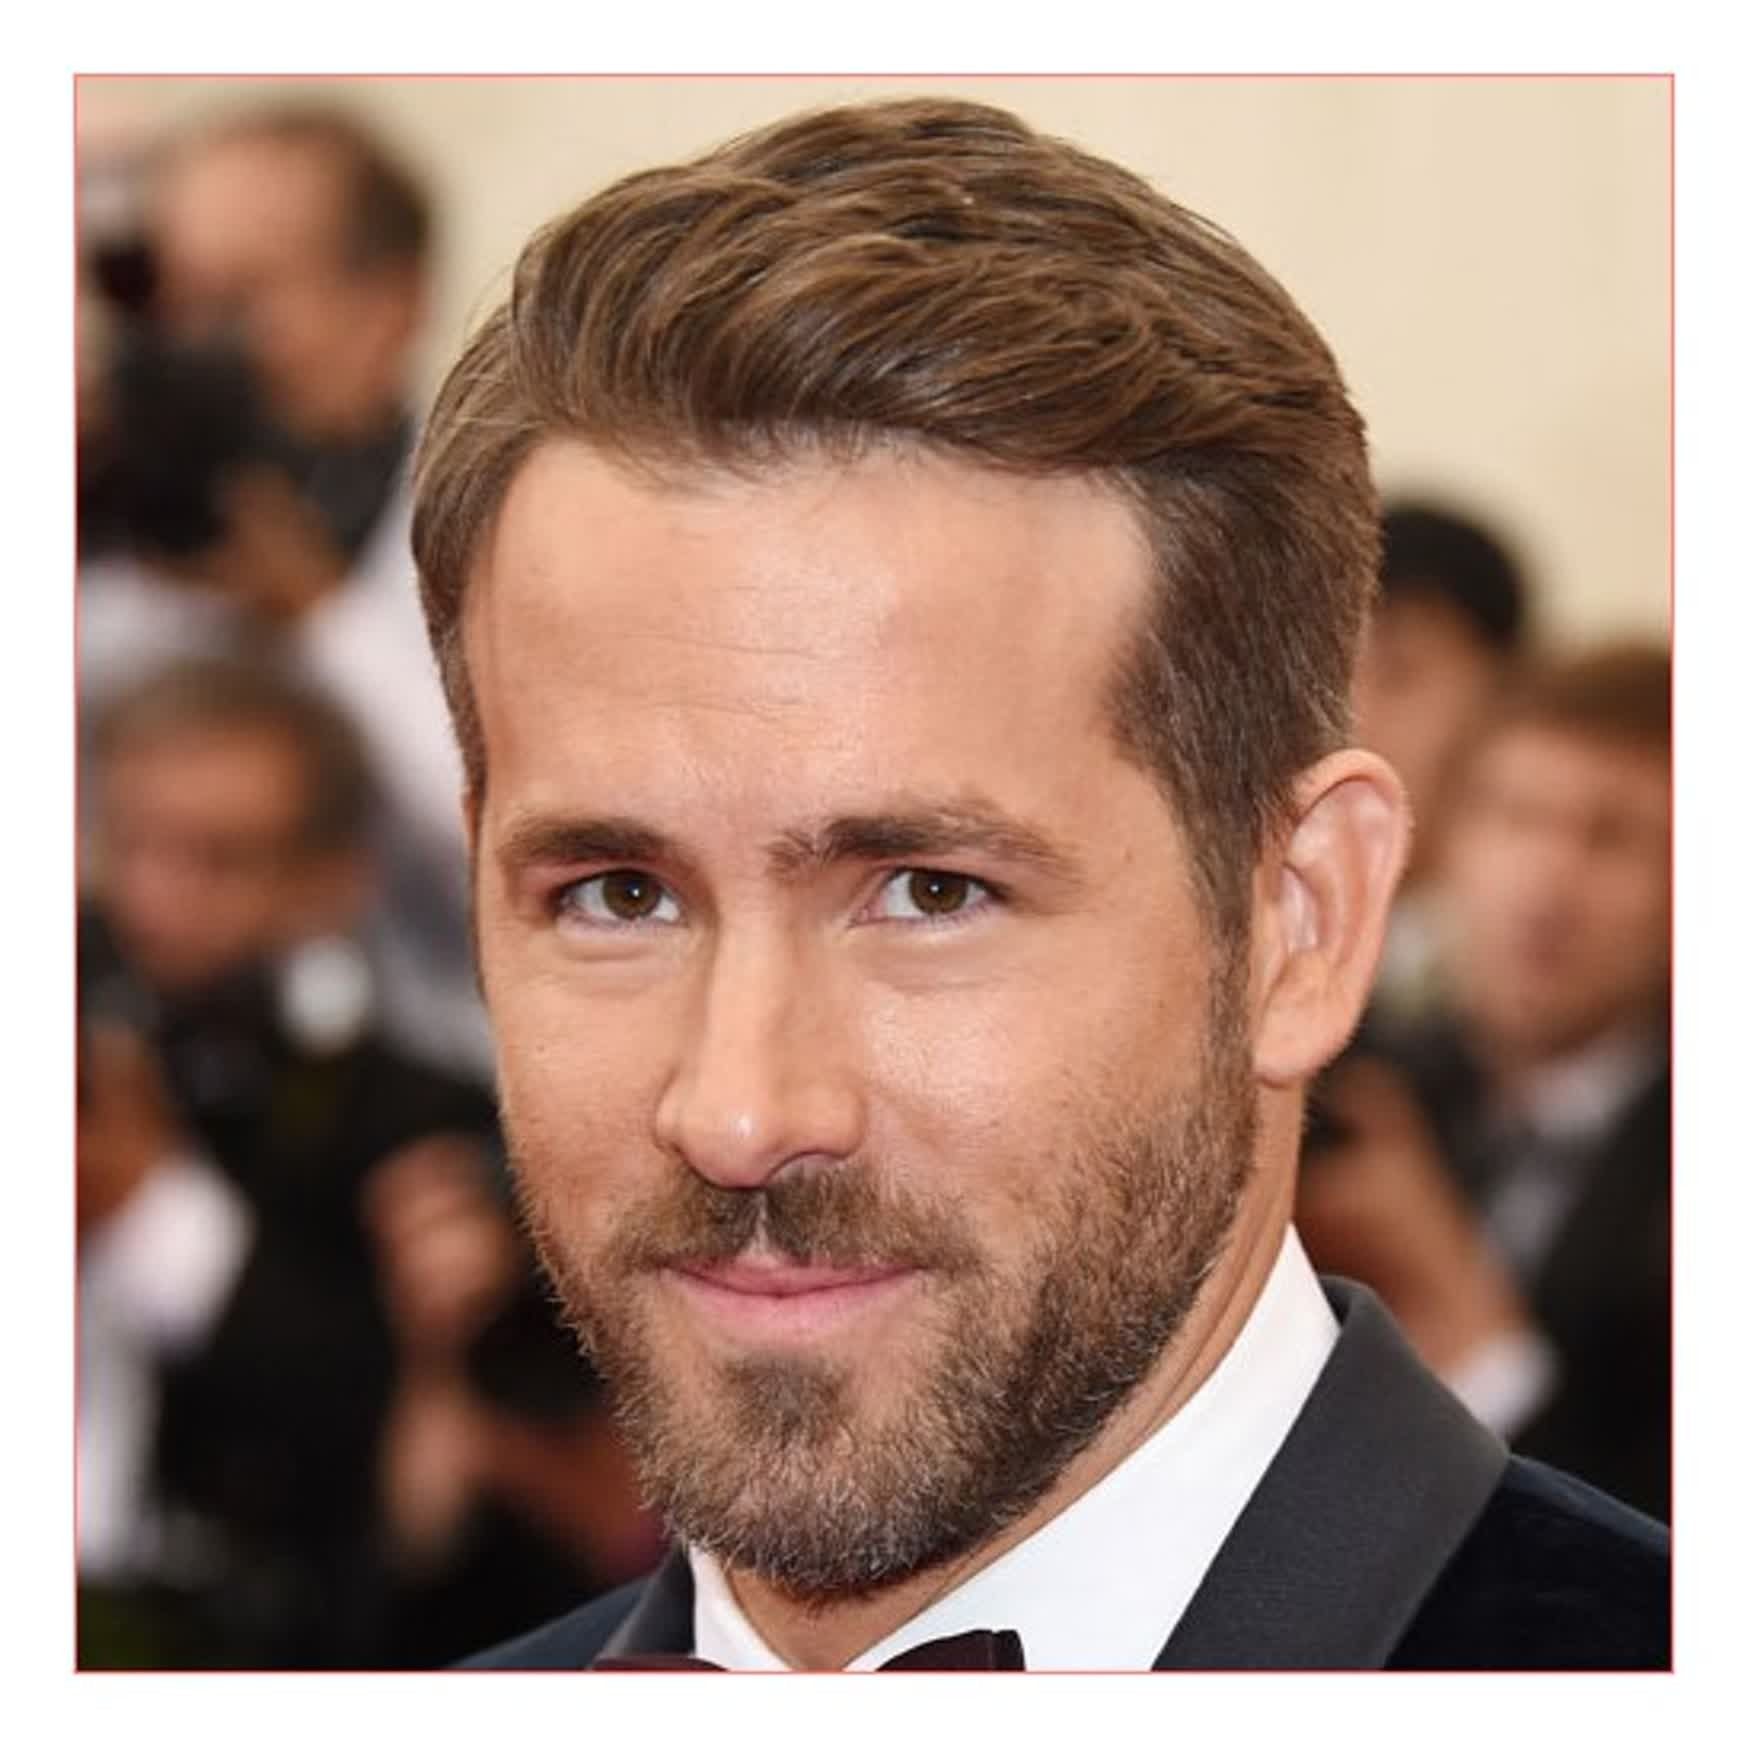 The Very Best Hairstyles For Heart Shaped Faces 2017 Men Https Besthairstylemen Com The Very Best Hairst Heart Face Shape Mens Hairstyles Ryan Reynolds Hair